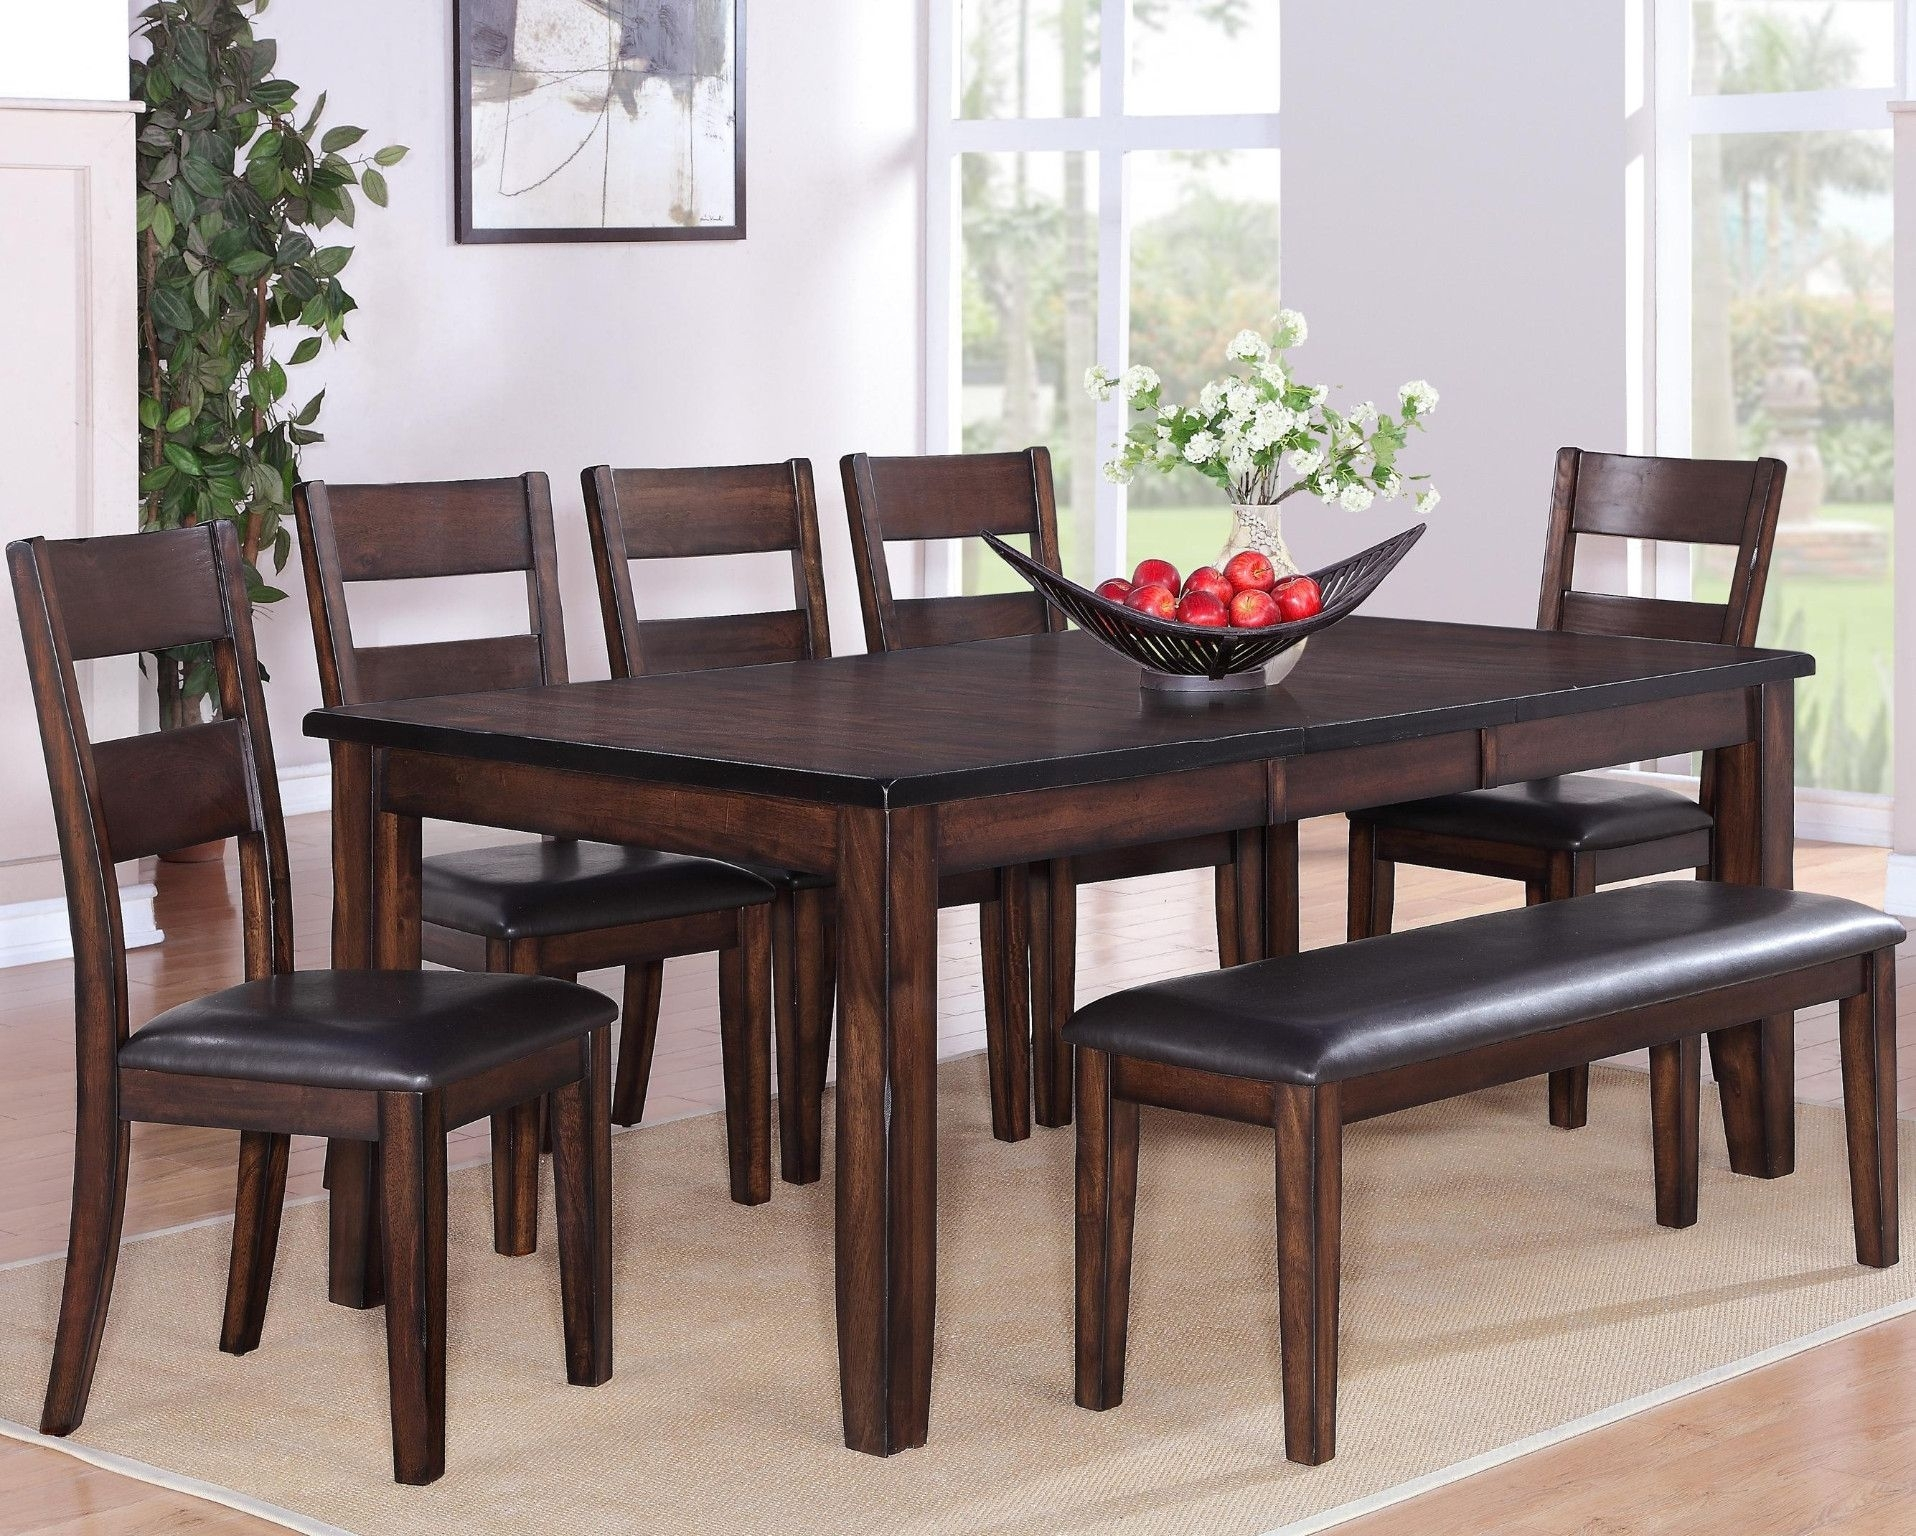 Maldives 5 Piece Dinette Table And 4 Chairs $699.00 Table $ (Image 14 of 20)